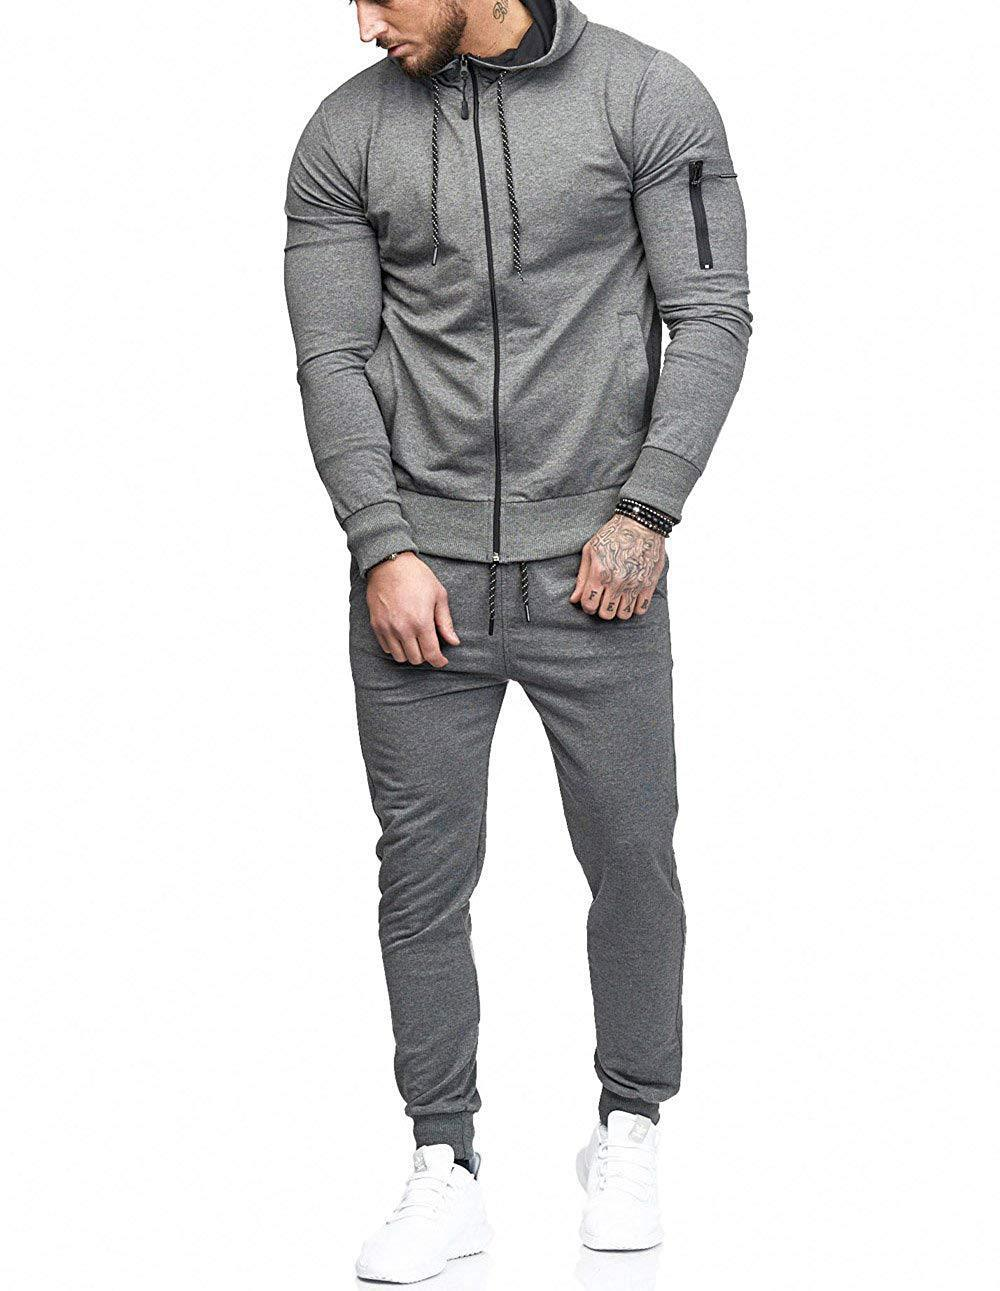 Mens Tracksuit 2020 New Autumn Winter Fashion Trend Solid Men Sports Suit Arm Zipper Decoration Hooded Casual Slim Men Suit